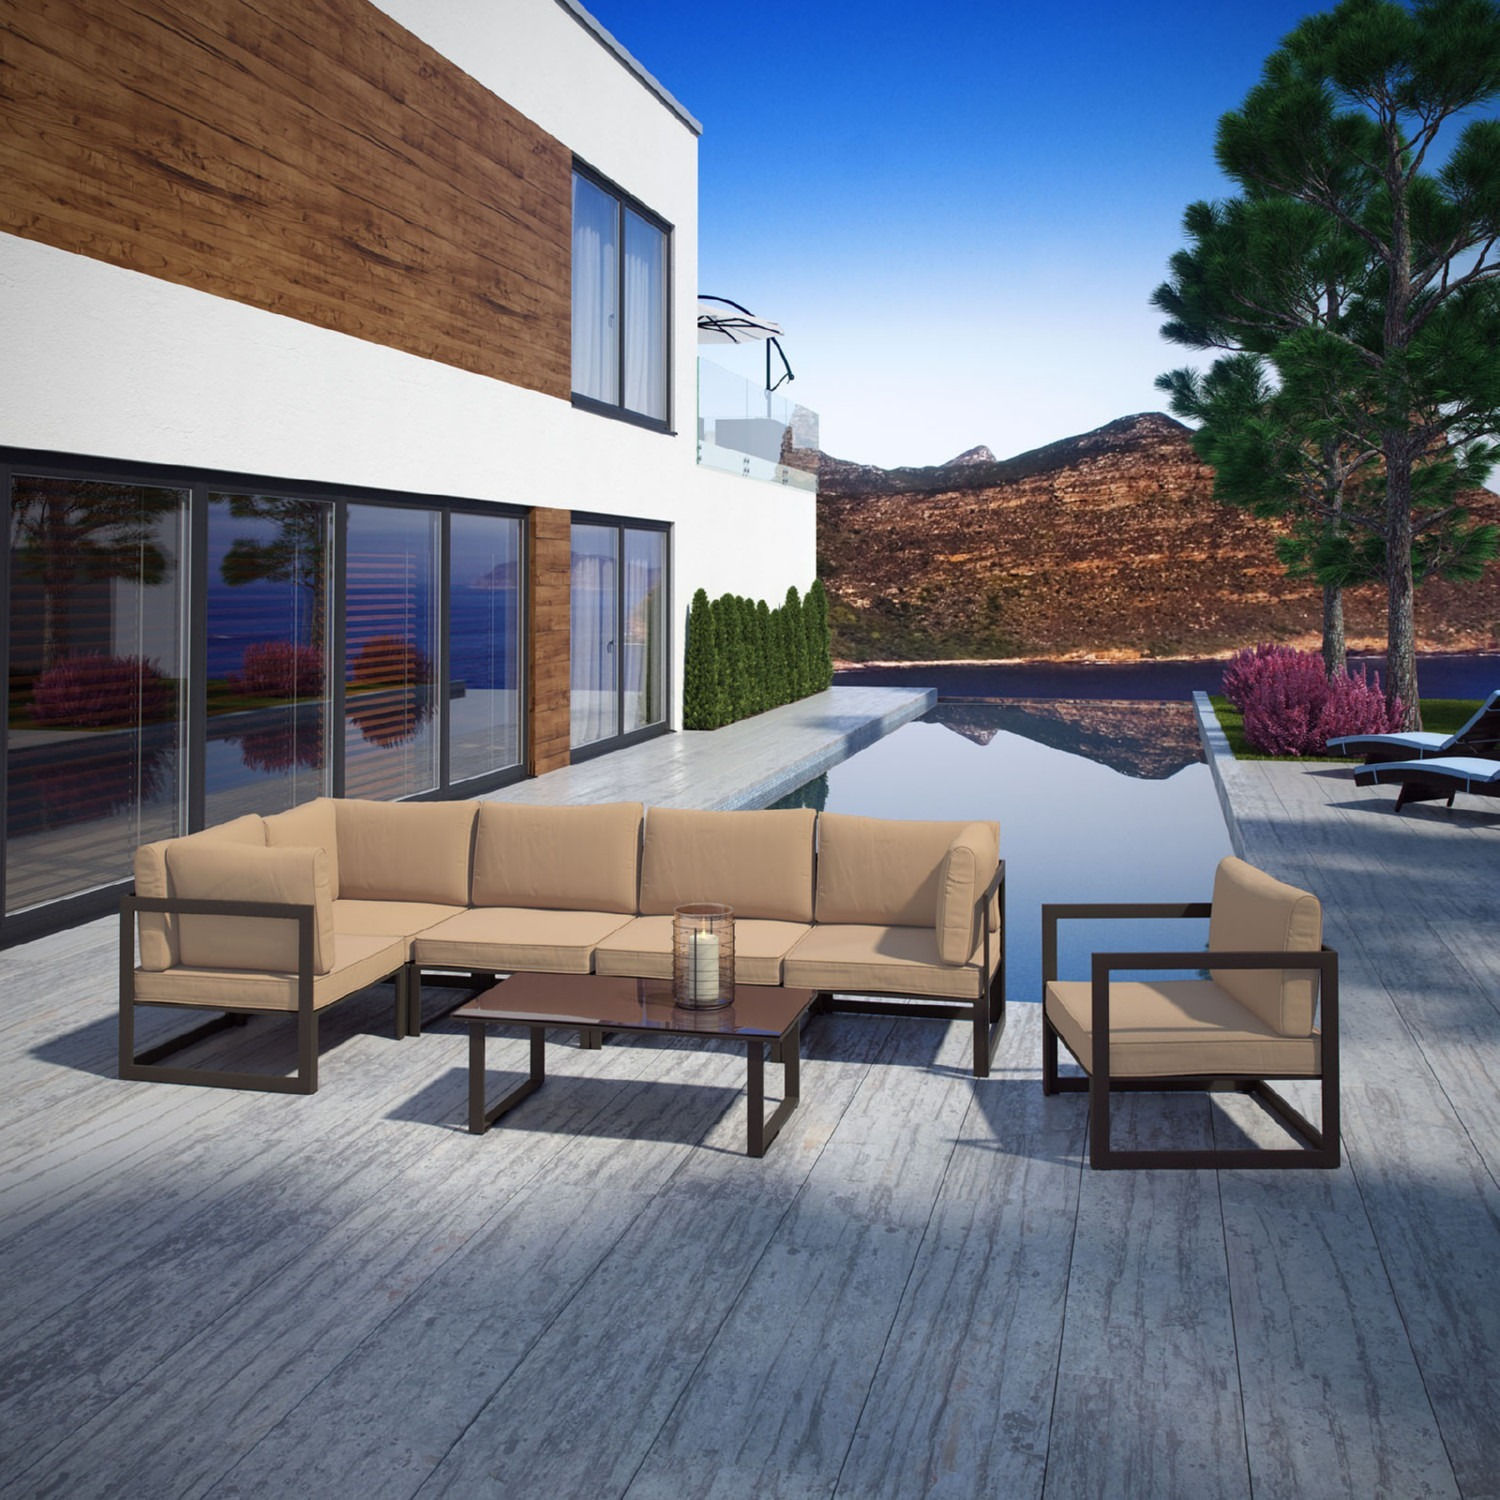 7-Piece Outdoor Sectional In Mocha & Brown Finish - image-9